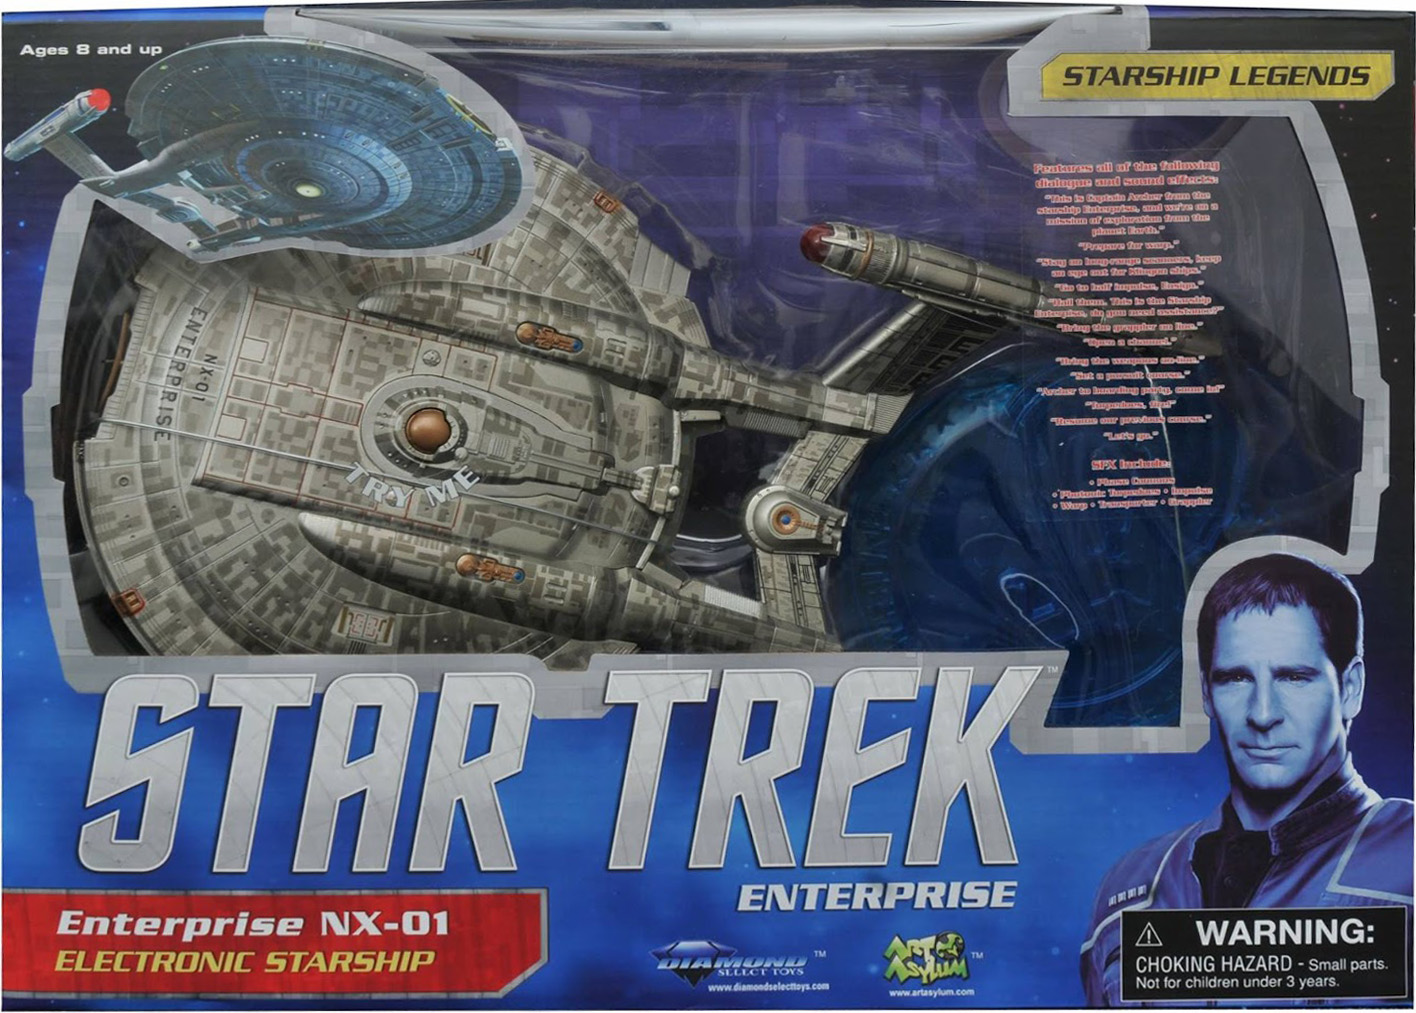 Enterprise NX-01 Re-release